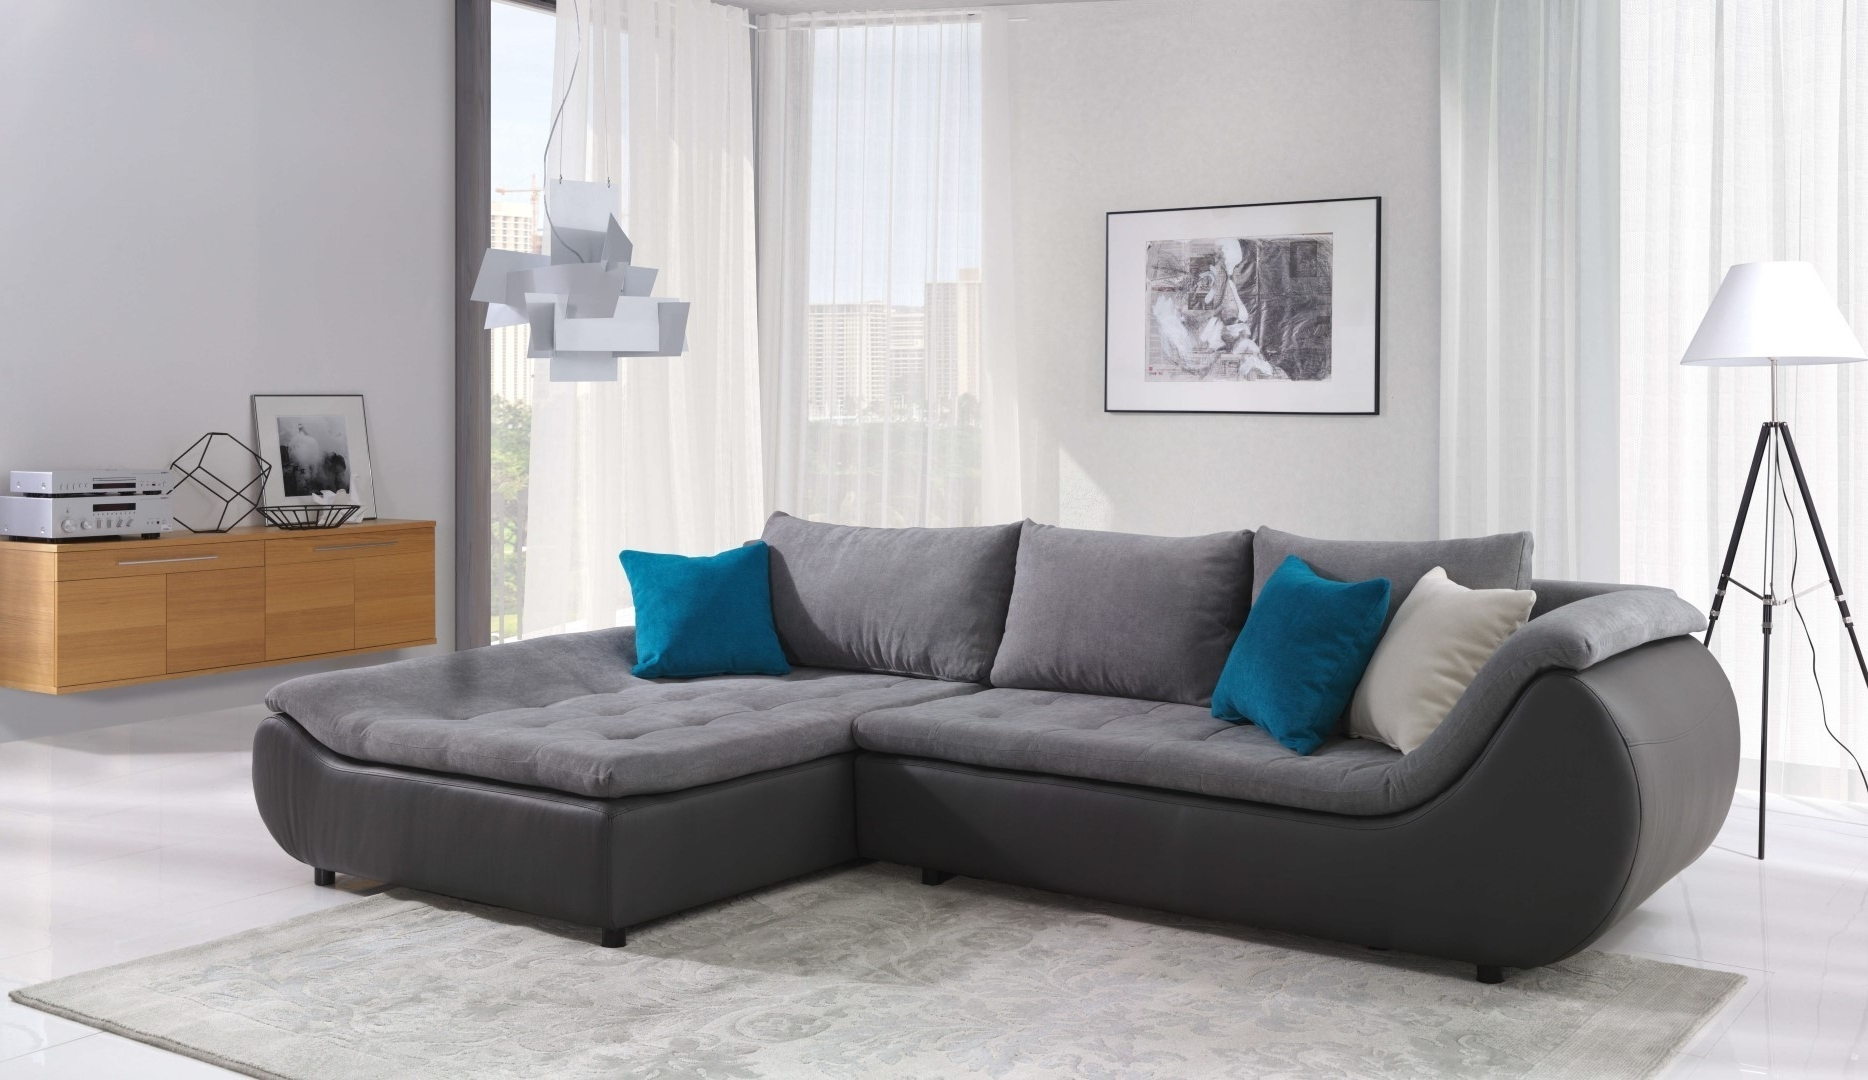 2019 Sectional Sofas Under 500 In Sofa (View 13 of 20)